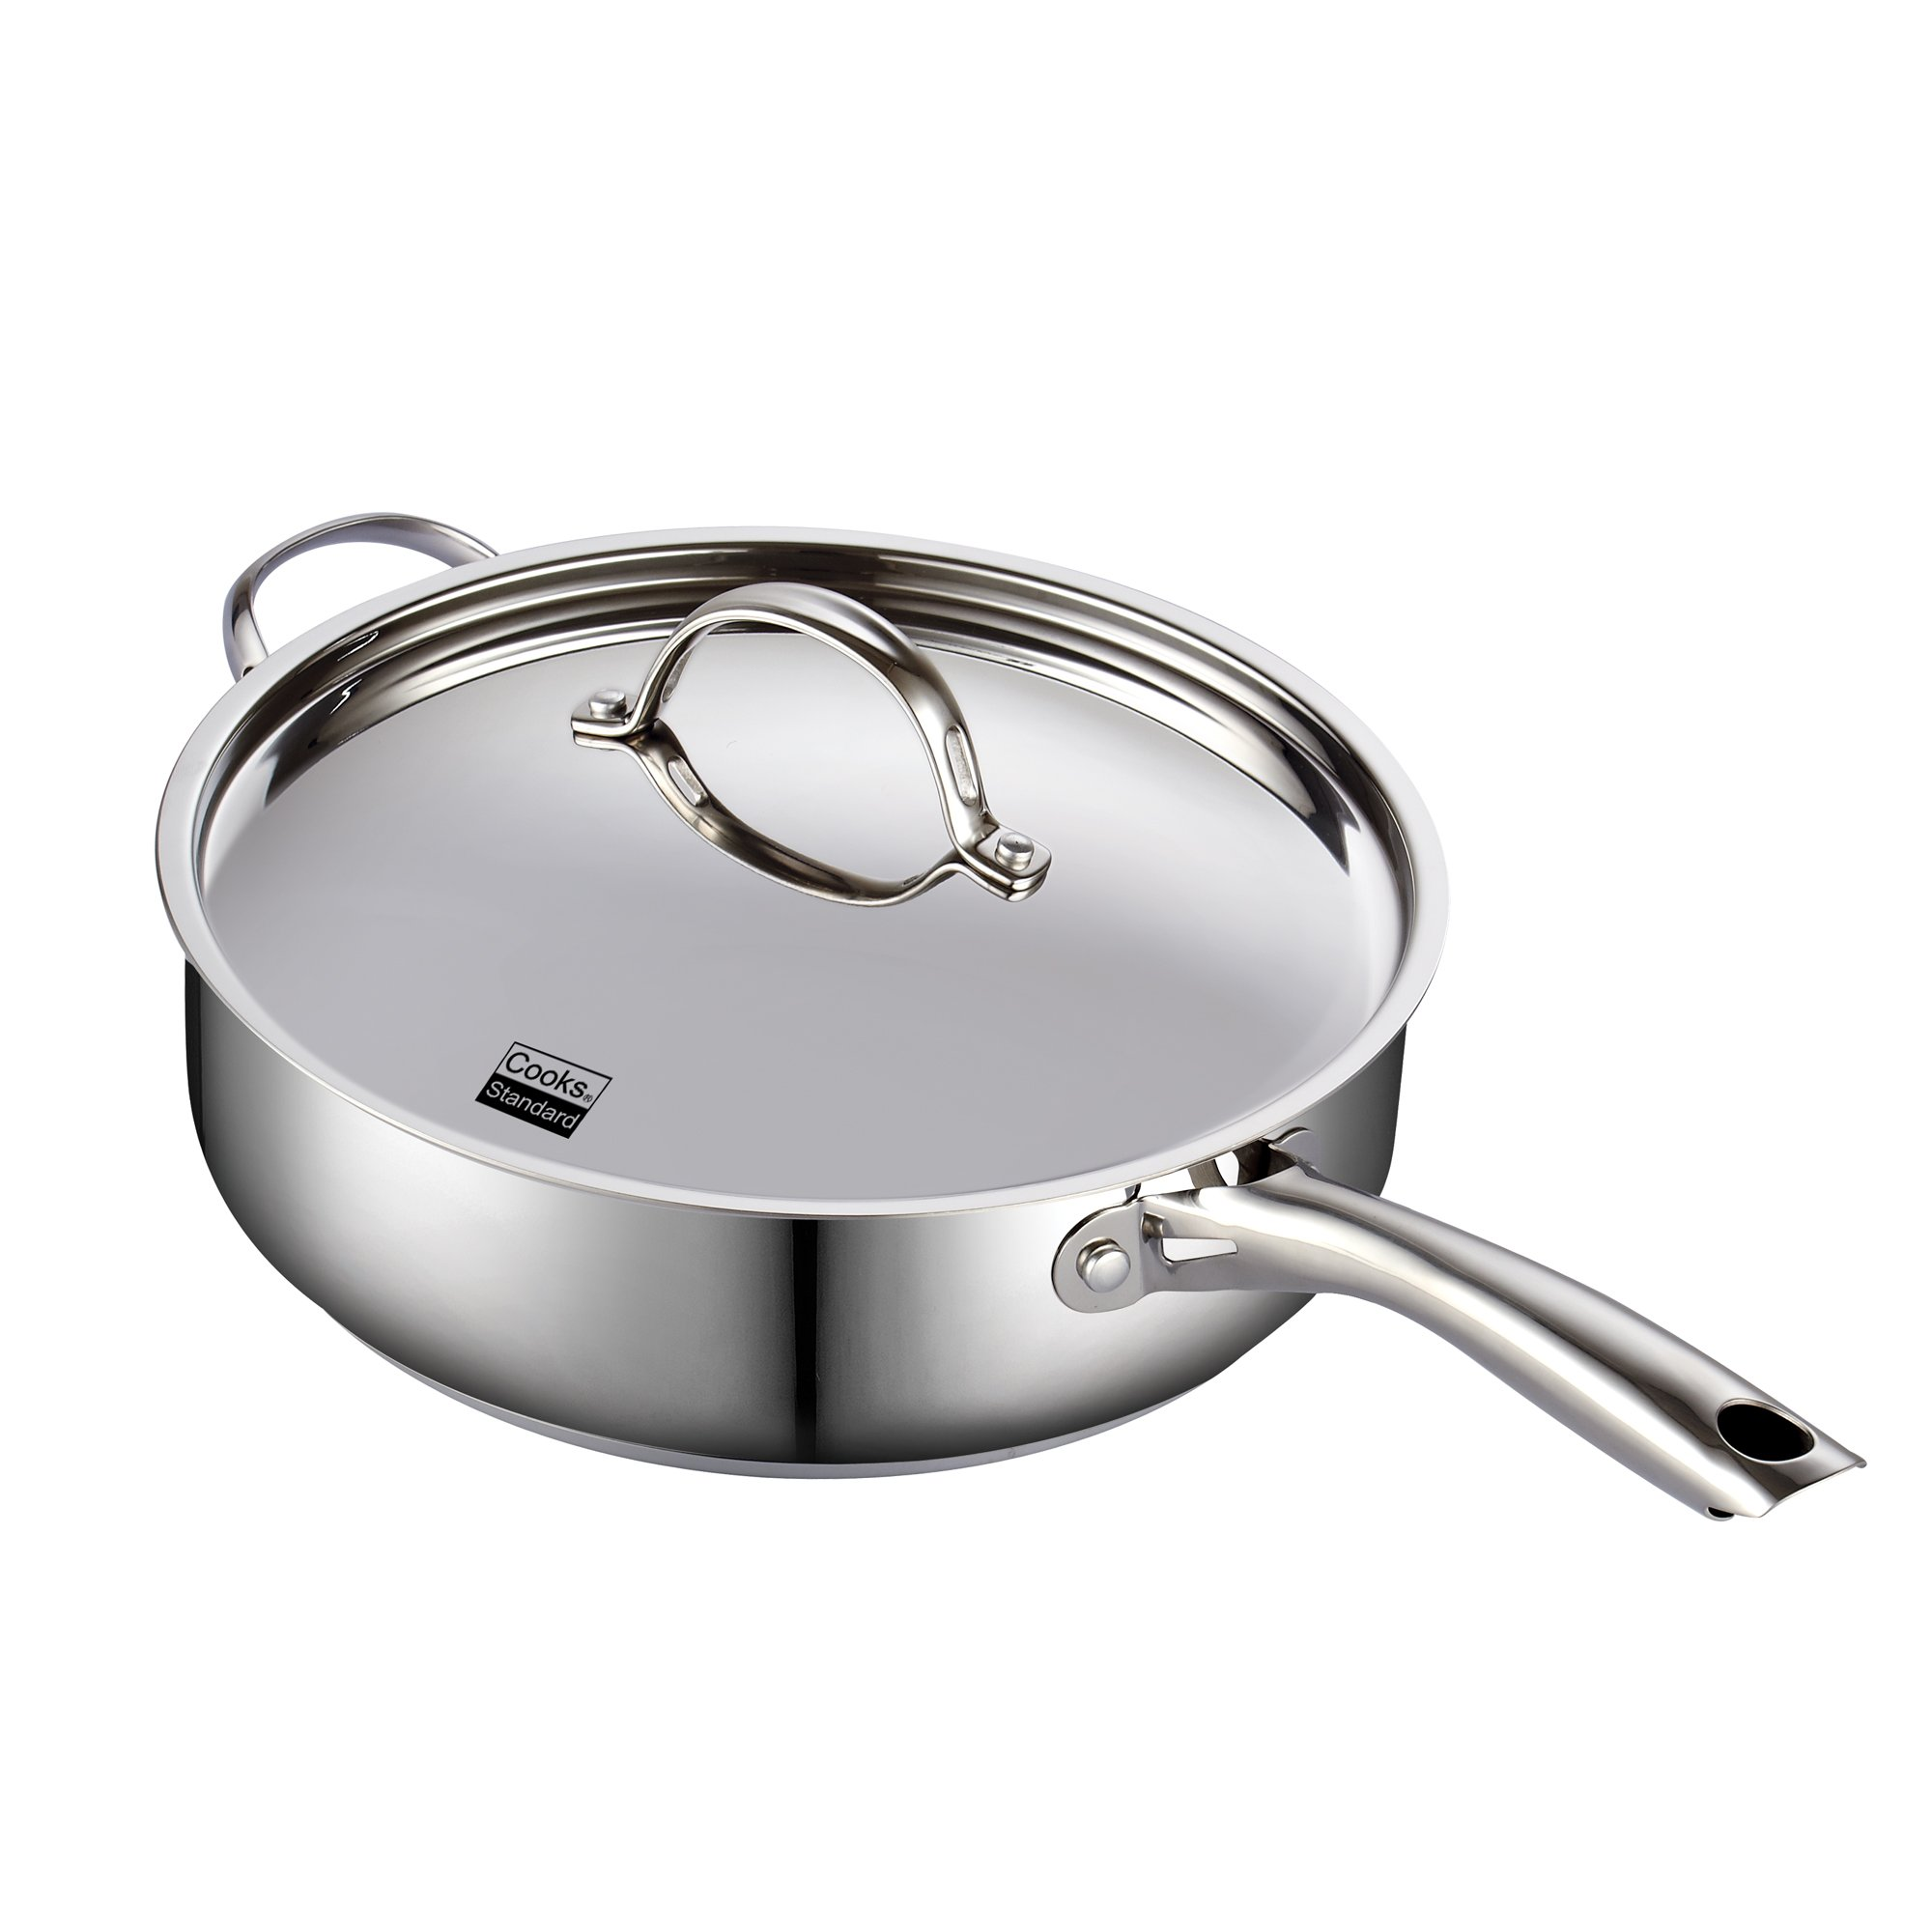 Cooks Standard 02523 Classic Stainless Steel Deep Lid 5 Quart/11-Inch Saute Pan, 5 Quart, Silver by Cooks Standard